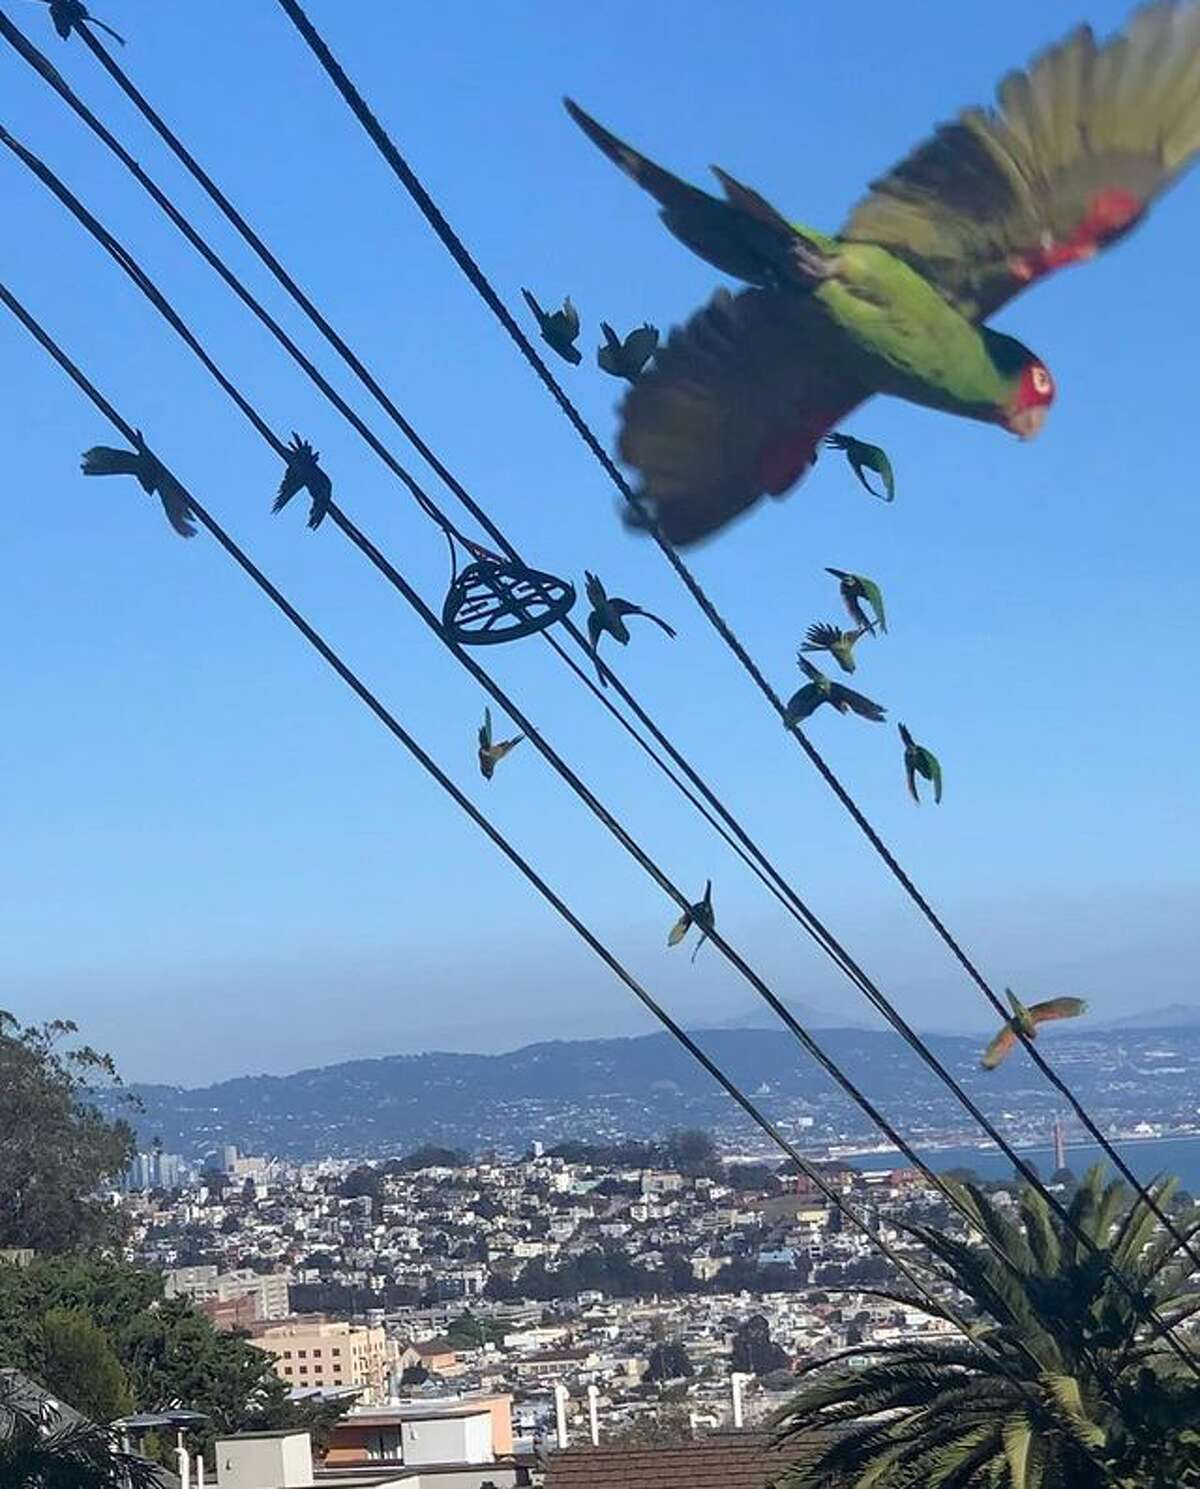 @travismonsonsf spotted a subflock of San Francisco's wild parrots at Billy Goat Hill.